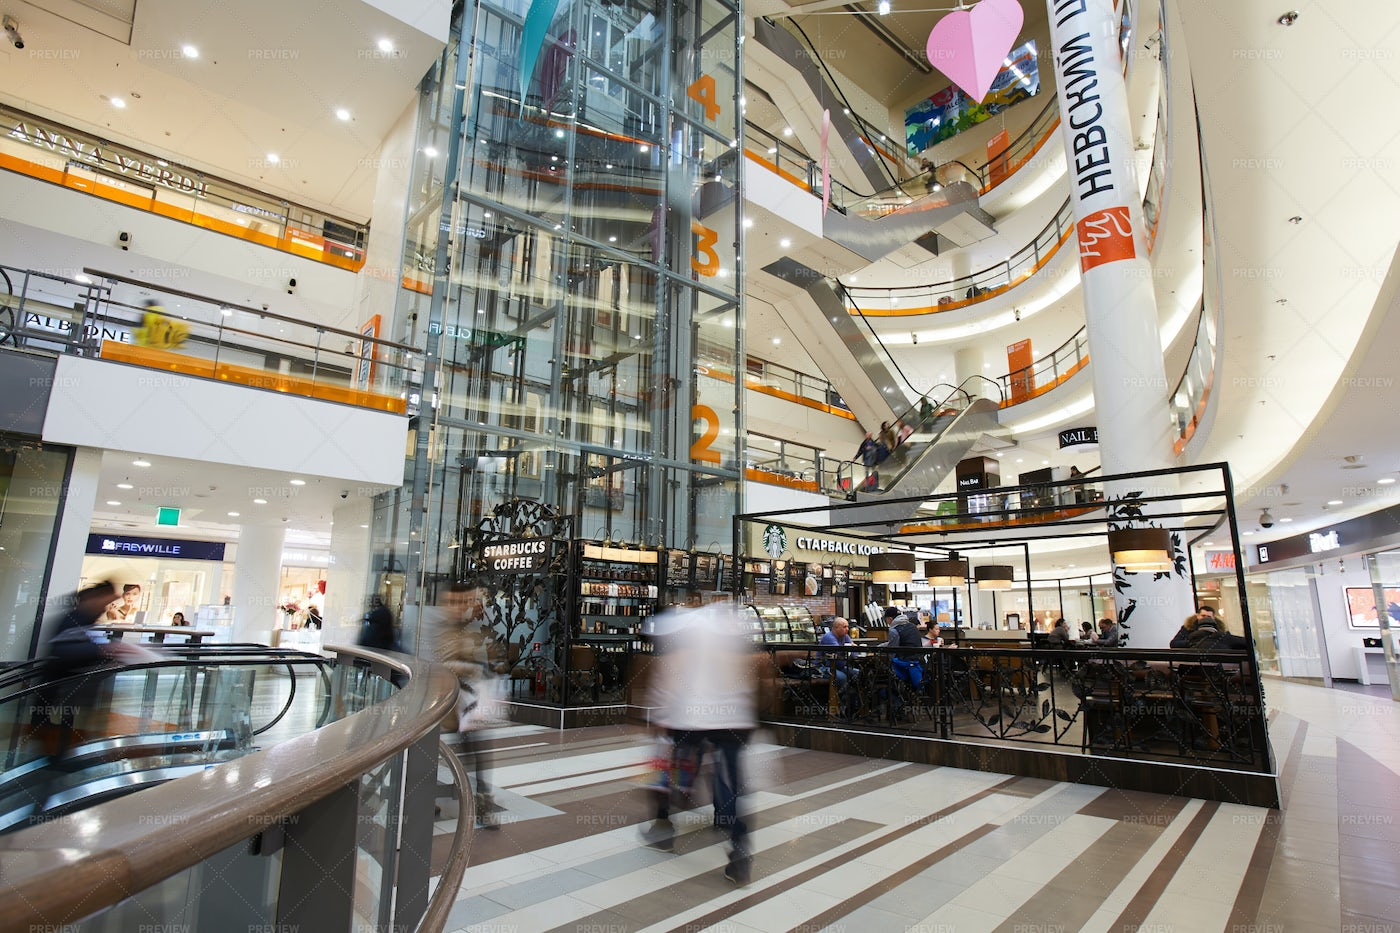 Modern Shopping Mall With Hurrying...: Stock Photos